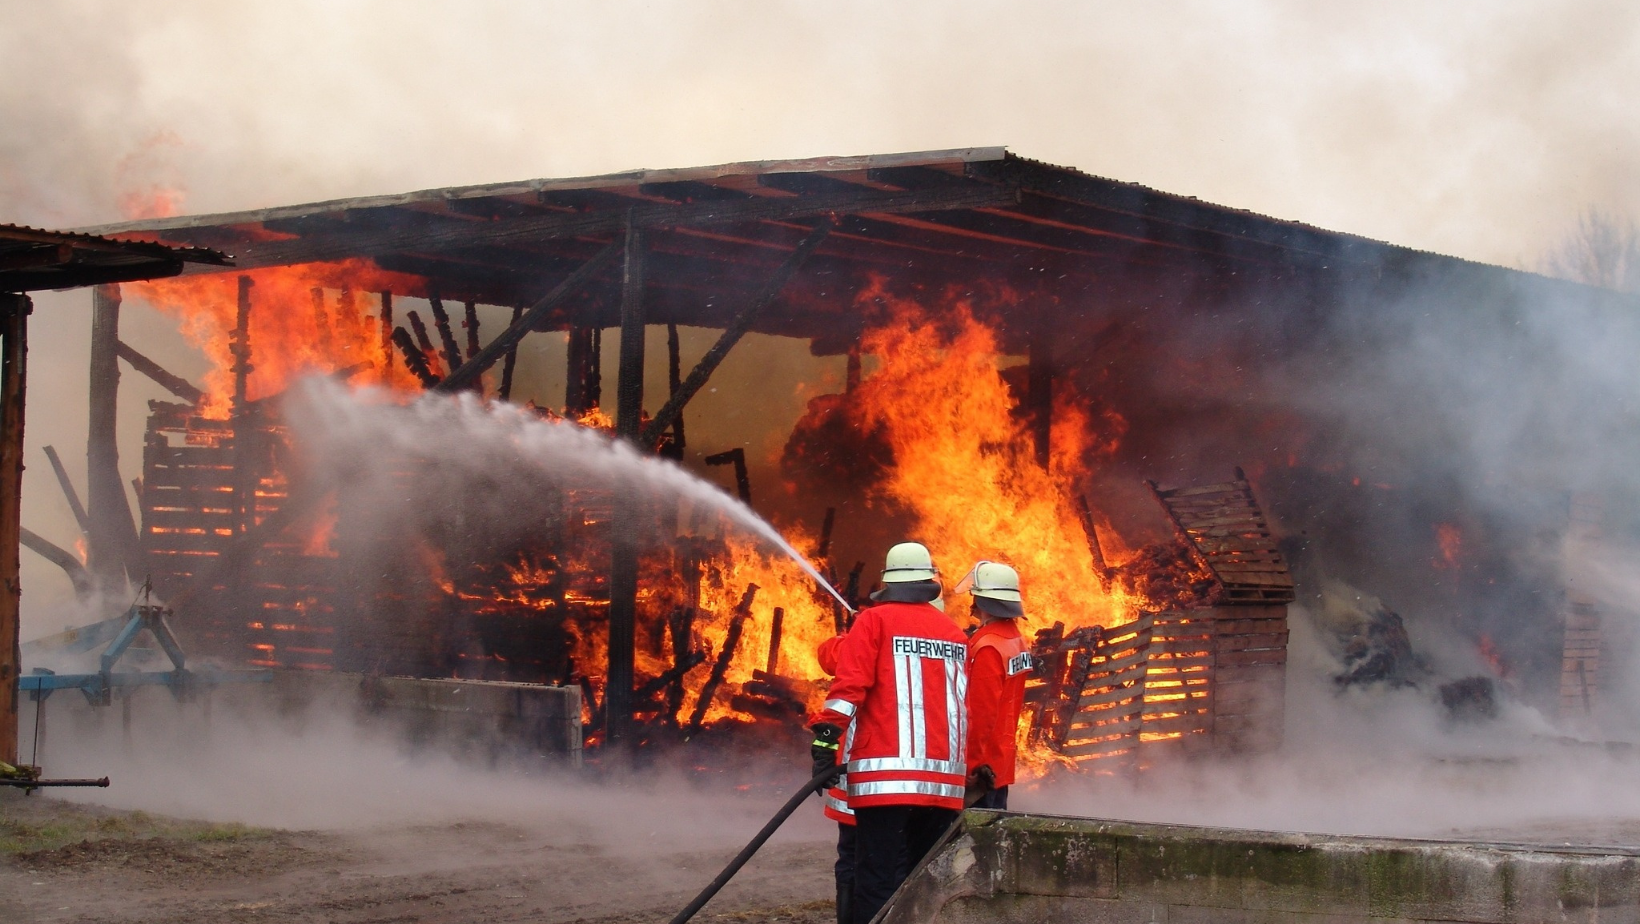 Dwelling Fire Insurance For Investment Properties